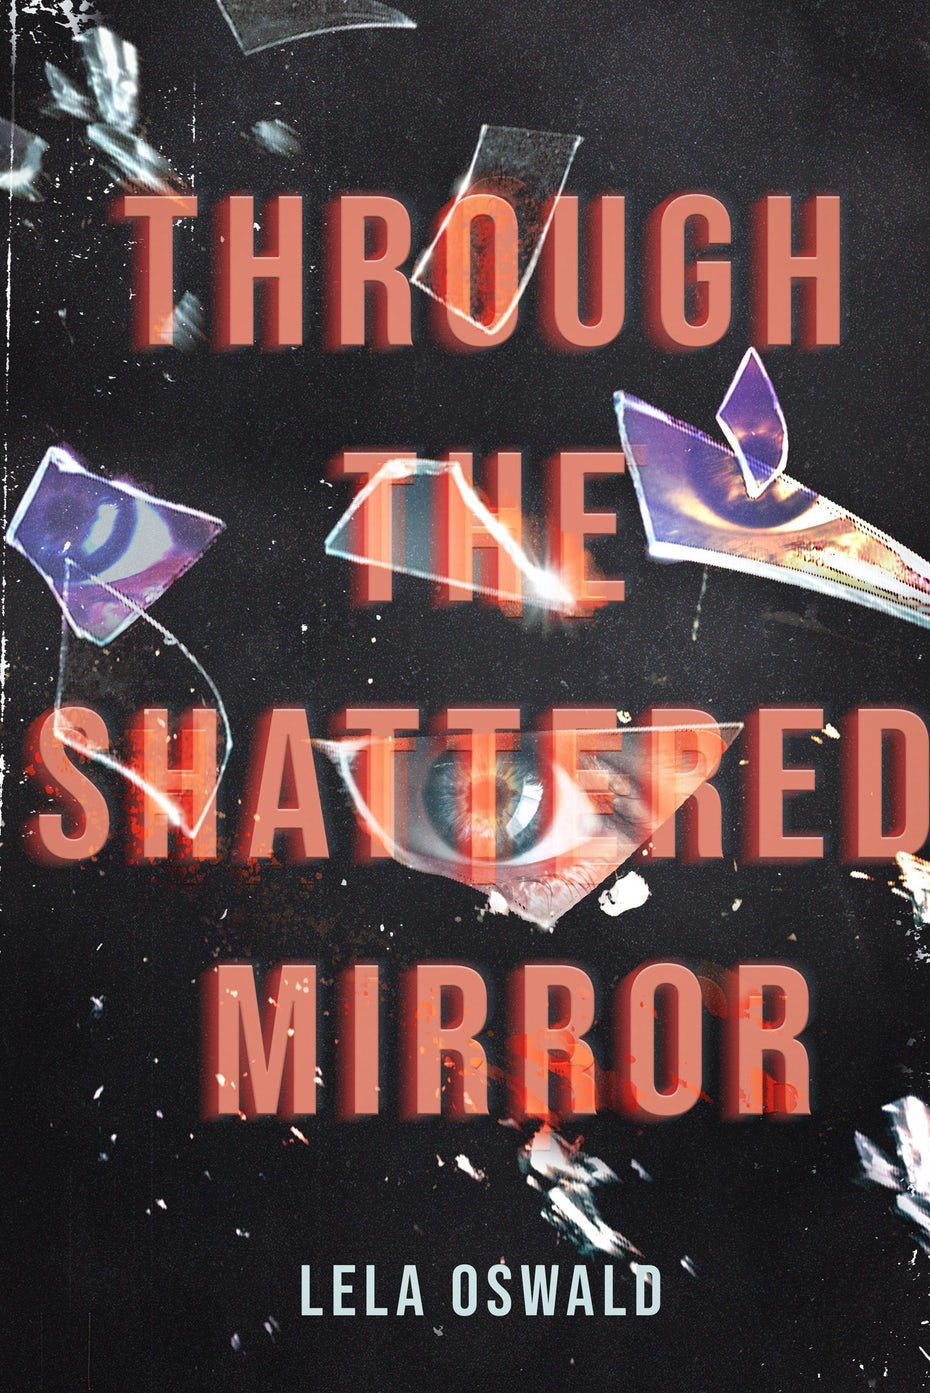 hidden titles book cover trends example: gray book cover with red text and images of eyes and shattered glass